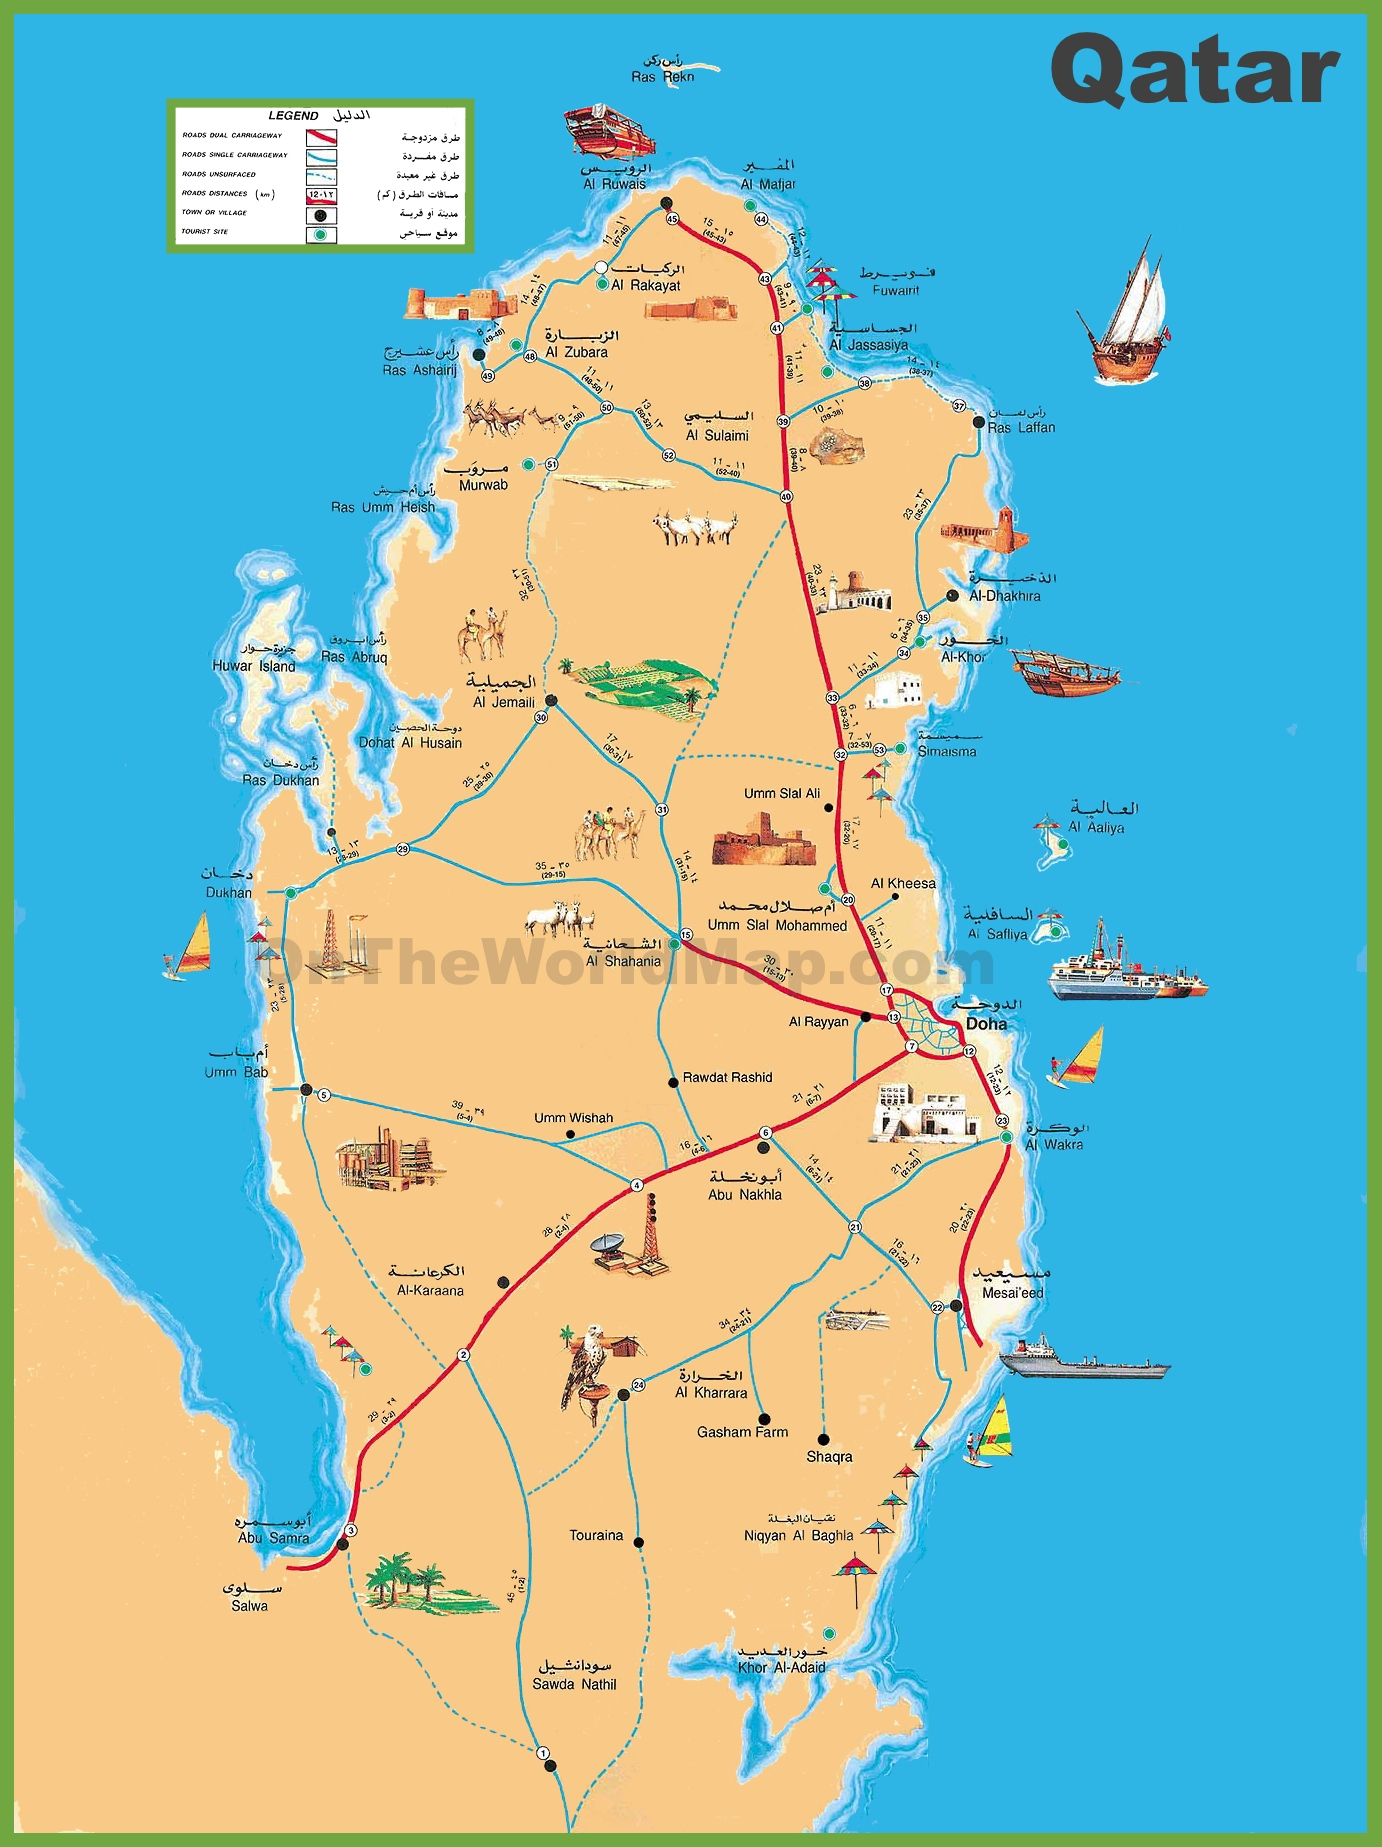 qatar tourism Natural gas-powerhouse qatar has set its sights on tourism to bolster its non-oil revenue and just in time too, as the global natural gas sector is in the middle of an unprecedented shift new.